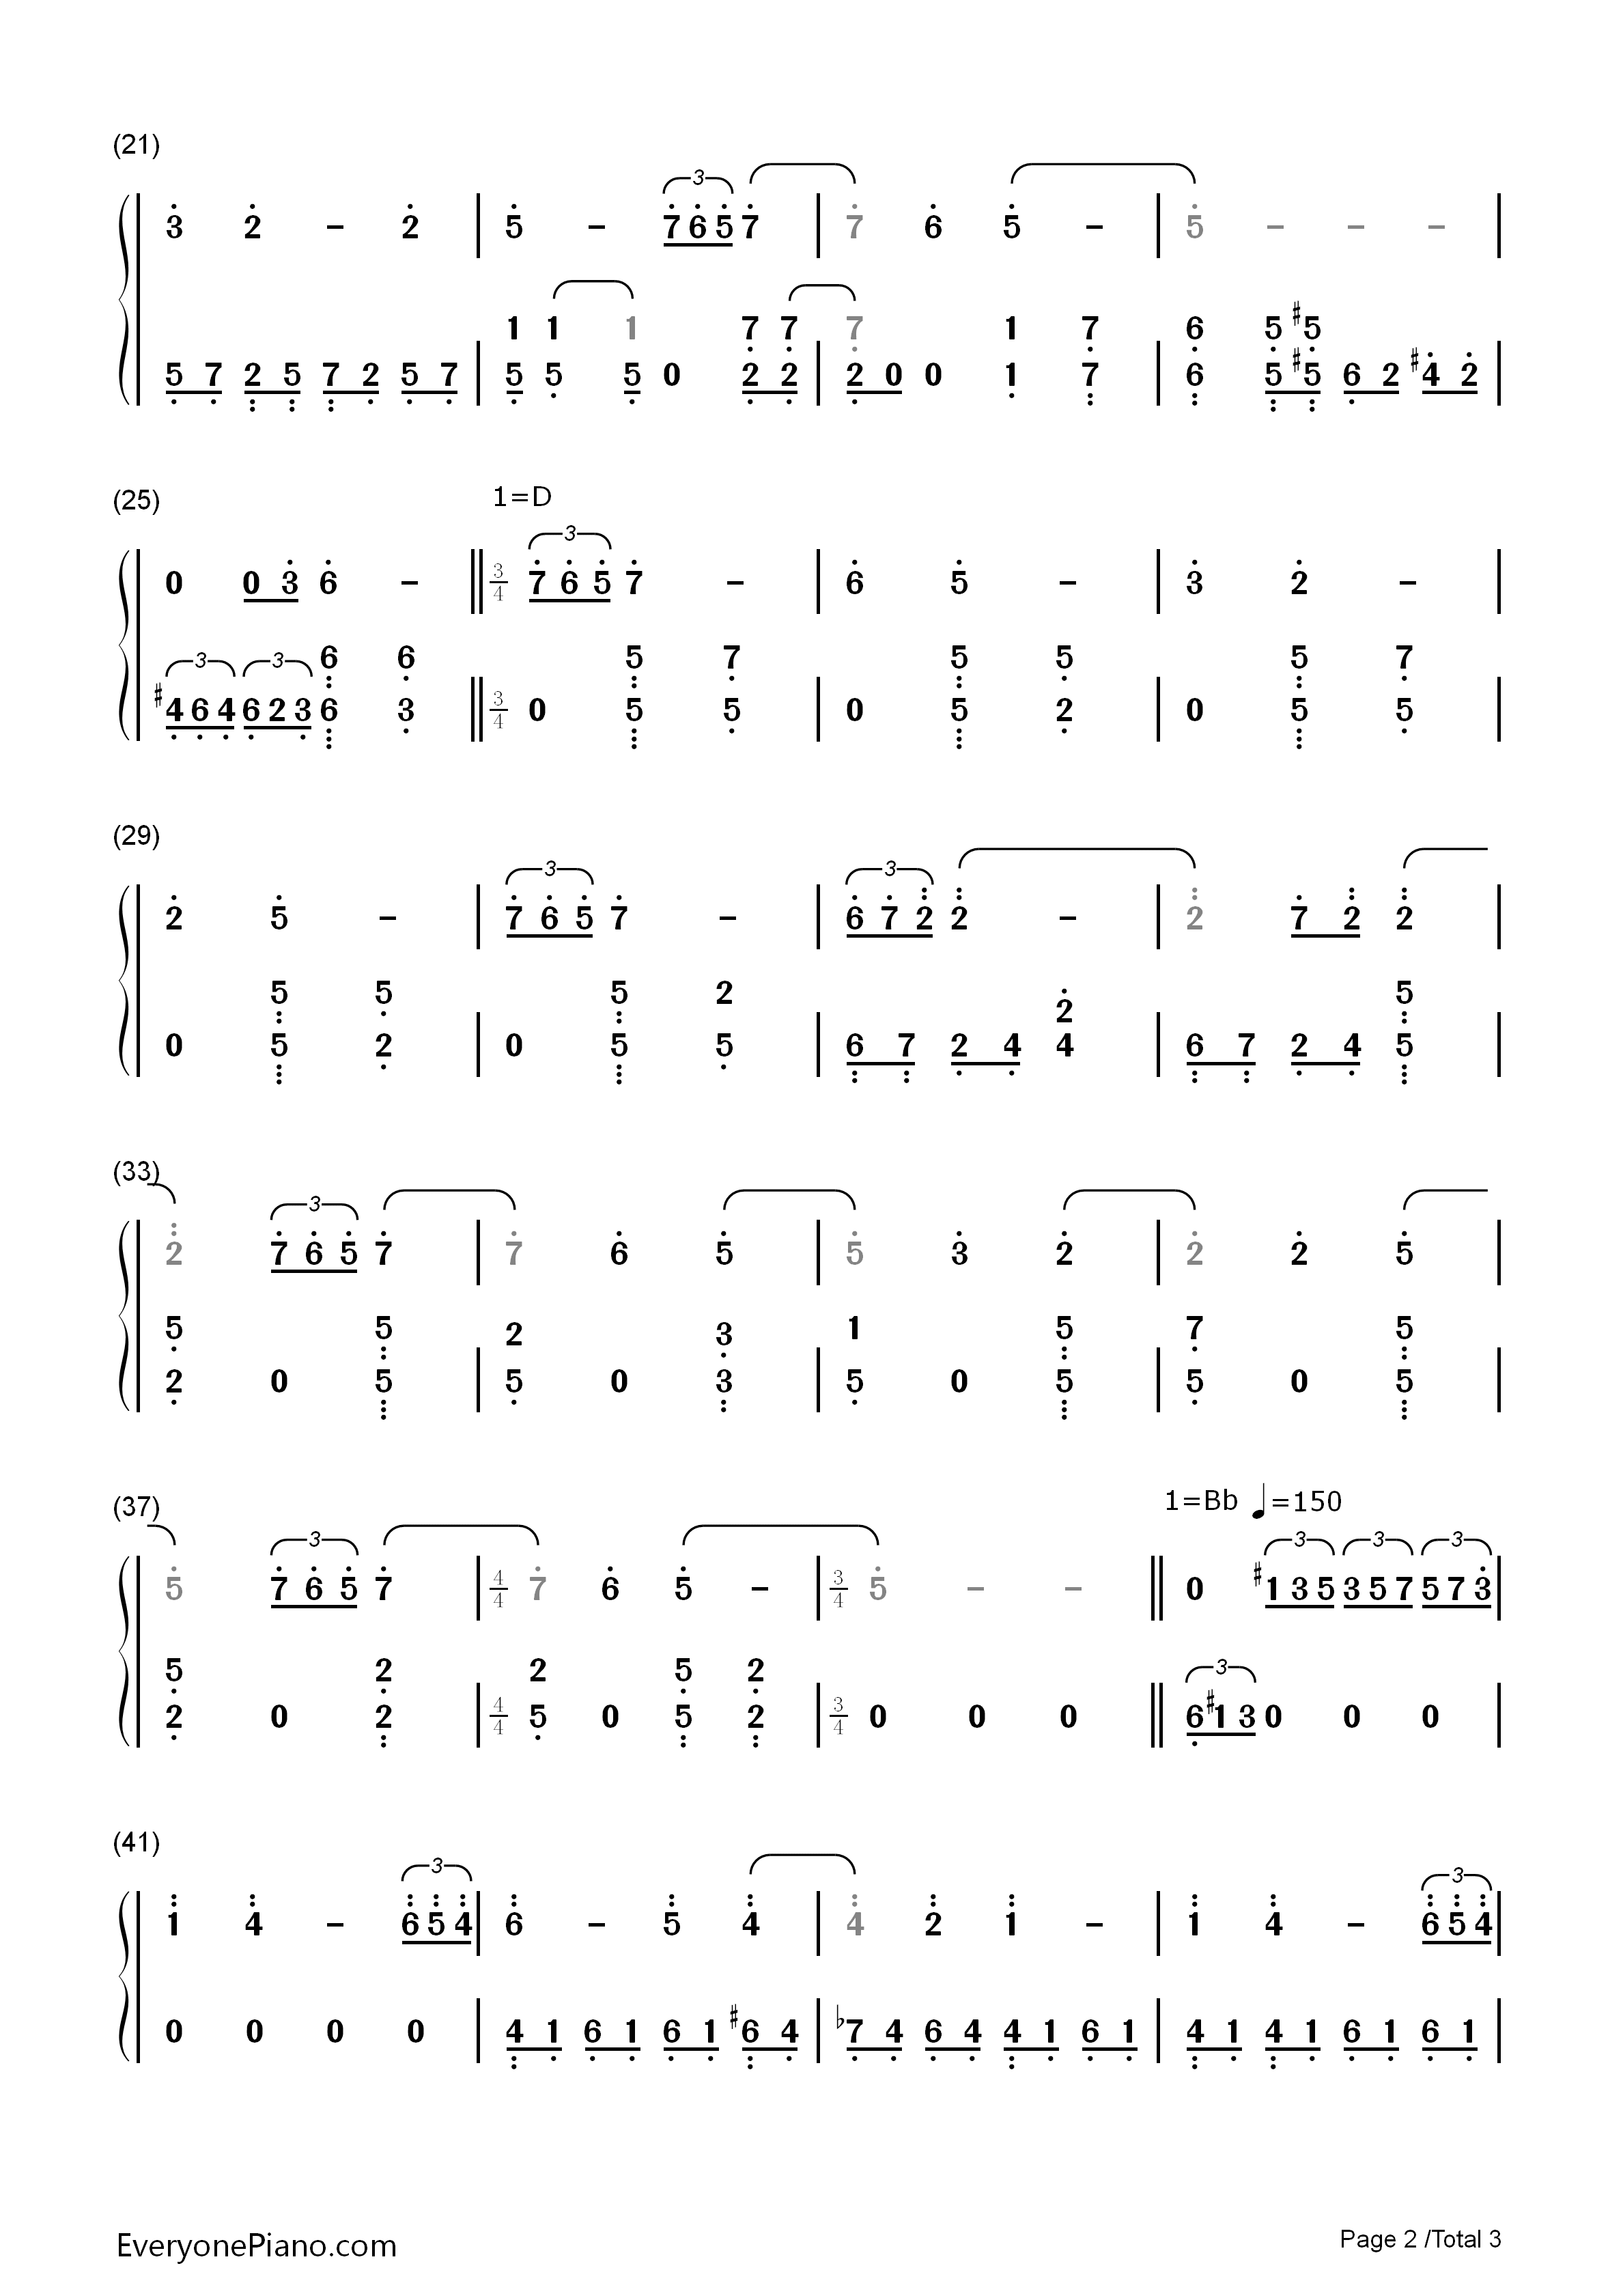 Amazing grace john newton numbered musical notation preview 2 listen now print sheet amazing grace john newton numbered musical notation preview 2 hexwebz Image collections